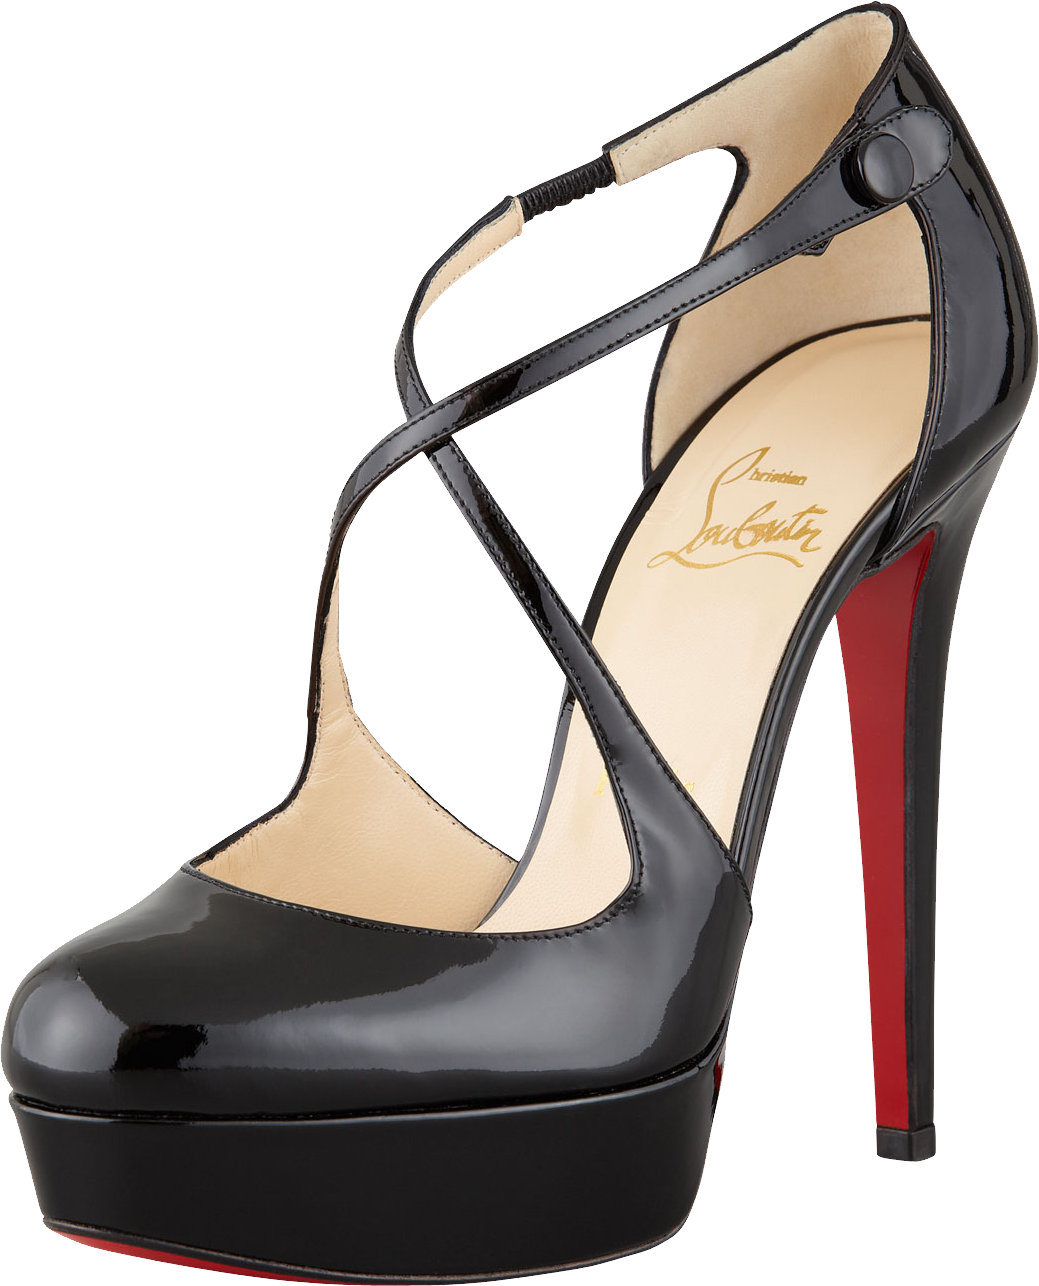 Black Louboutin Women's High